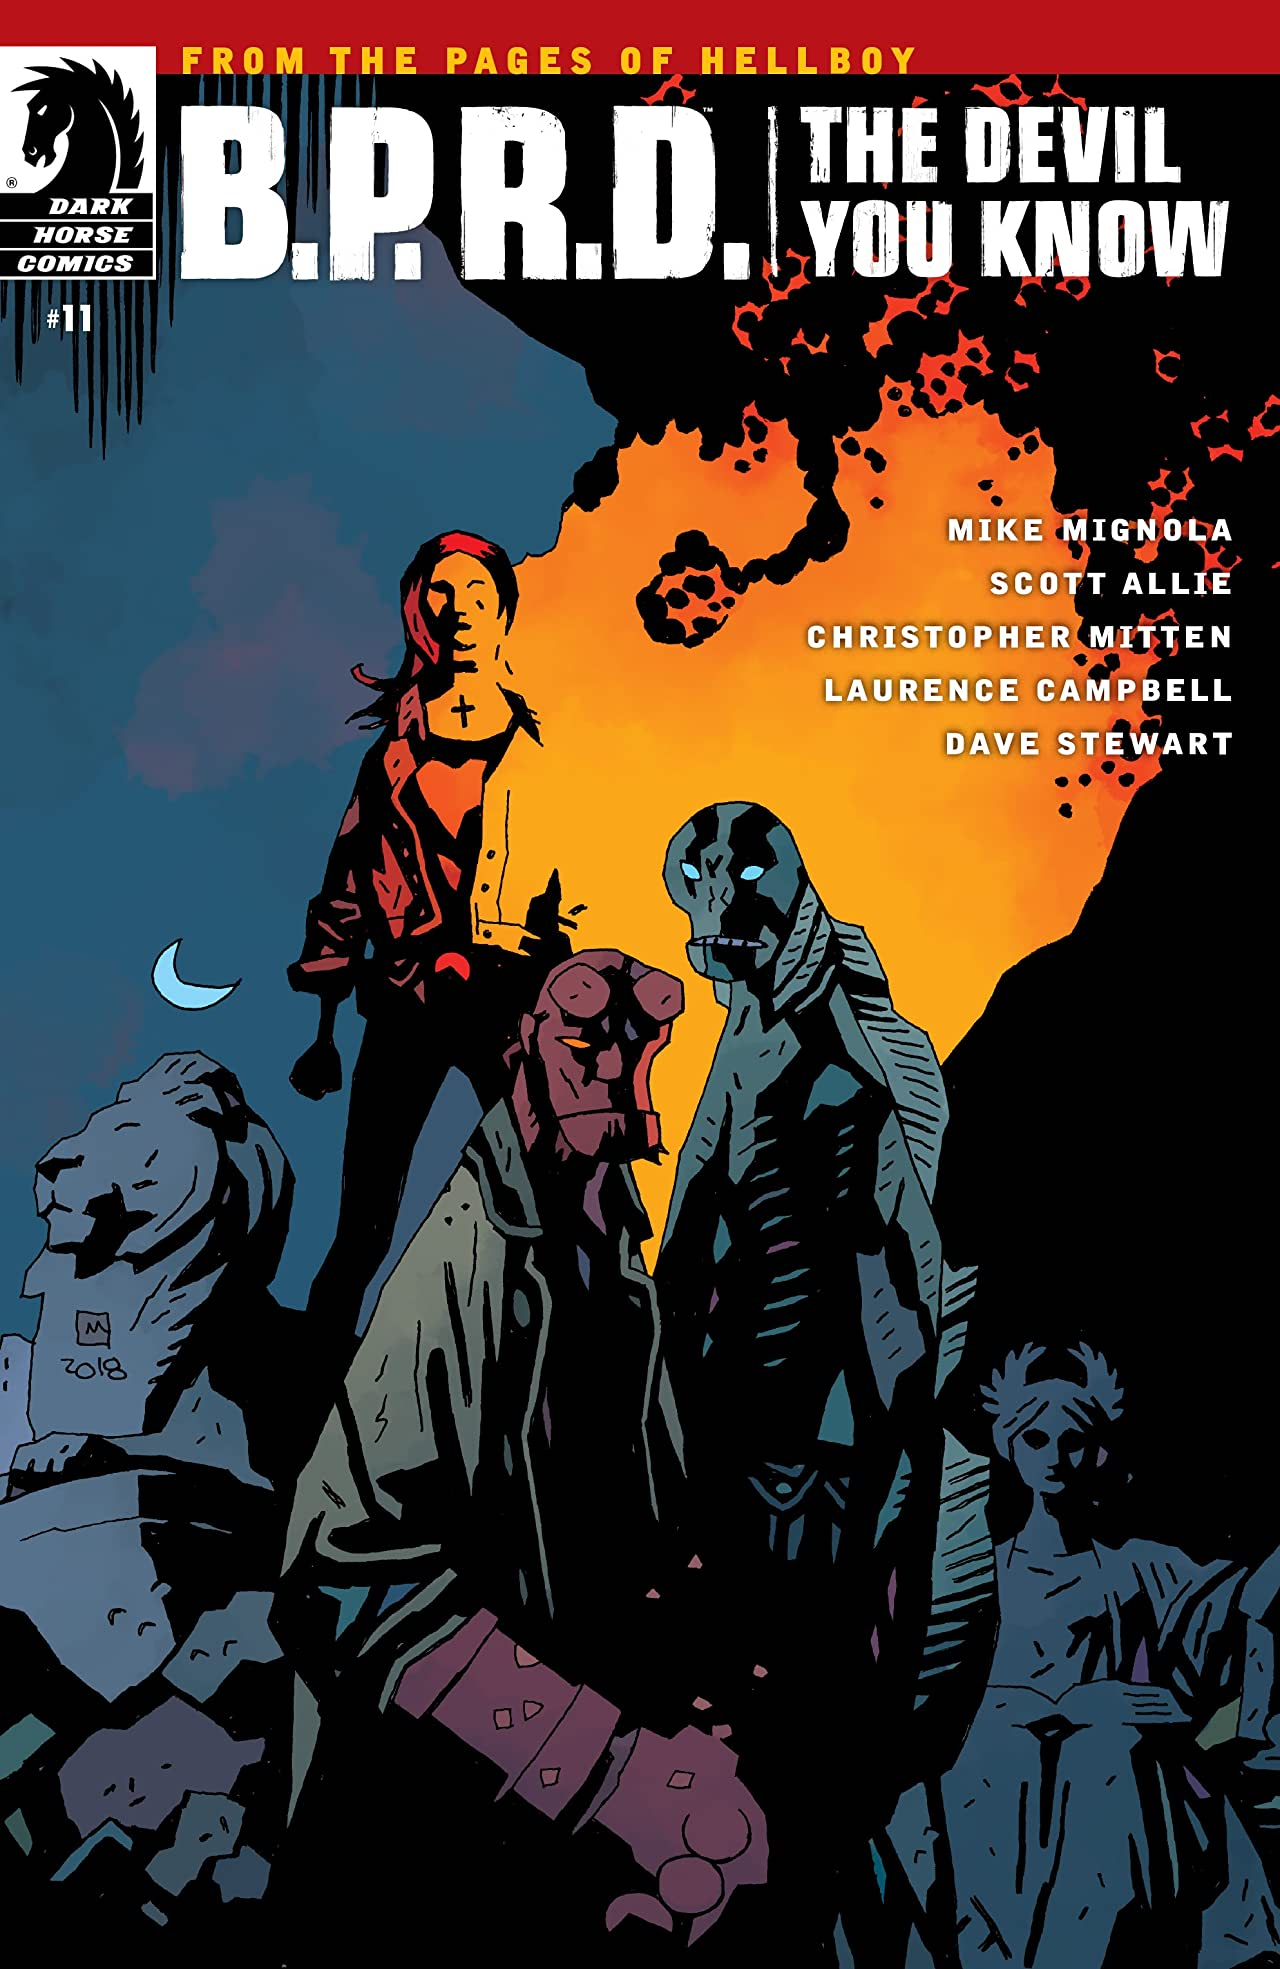 B.P.R.D.: The Devil You Know #11